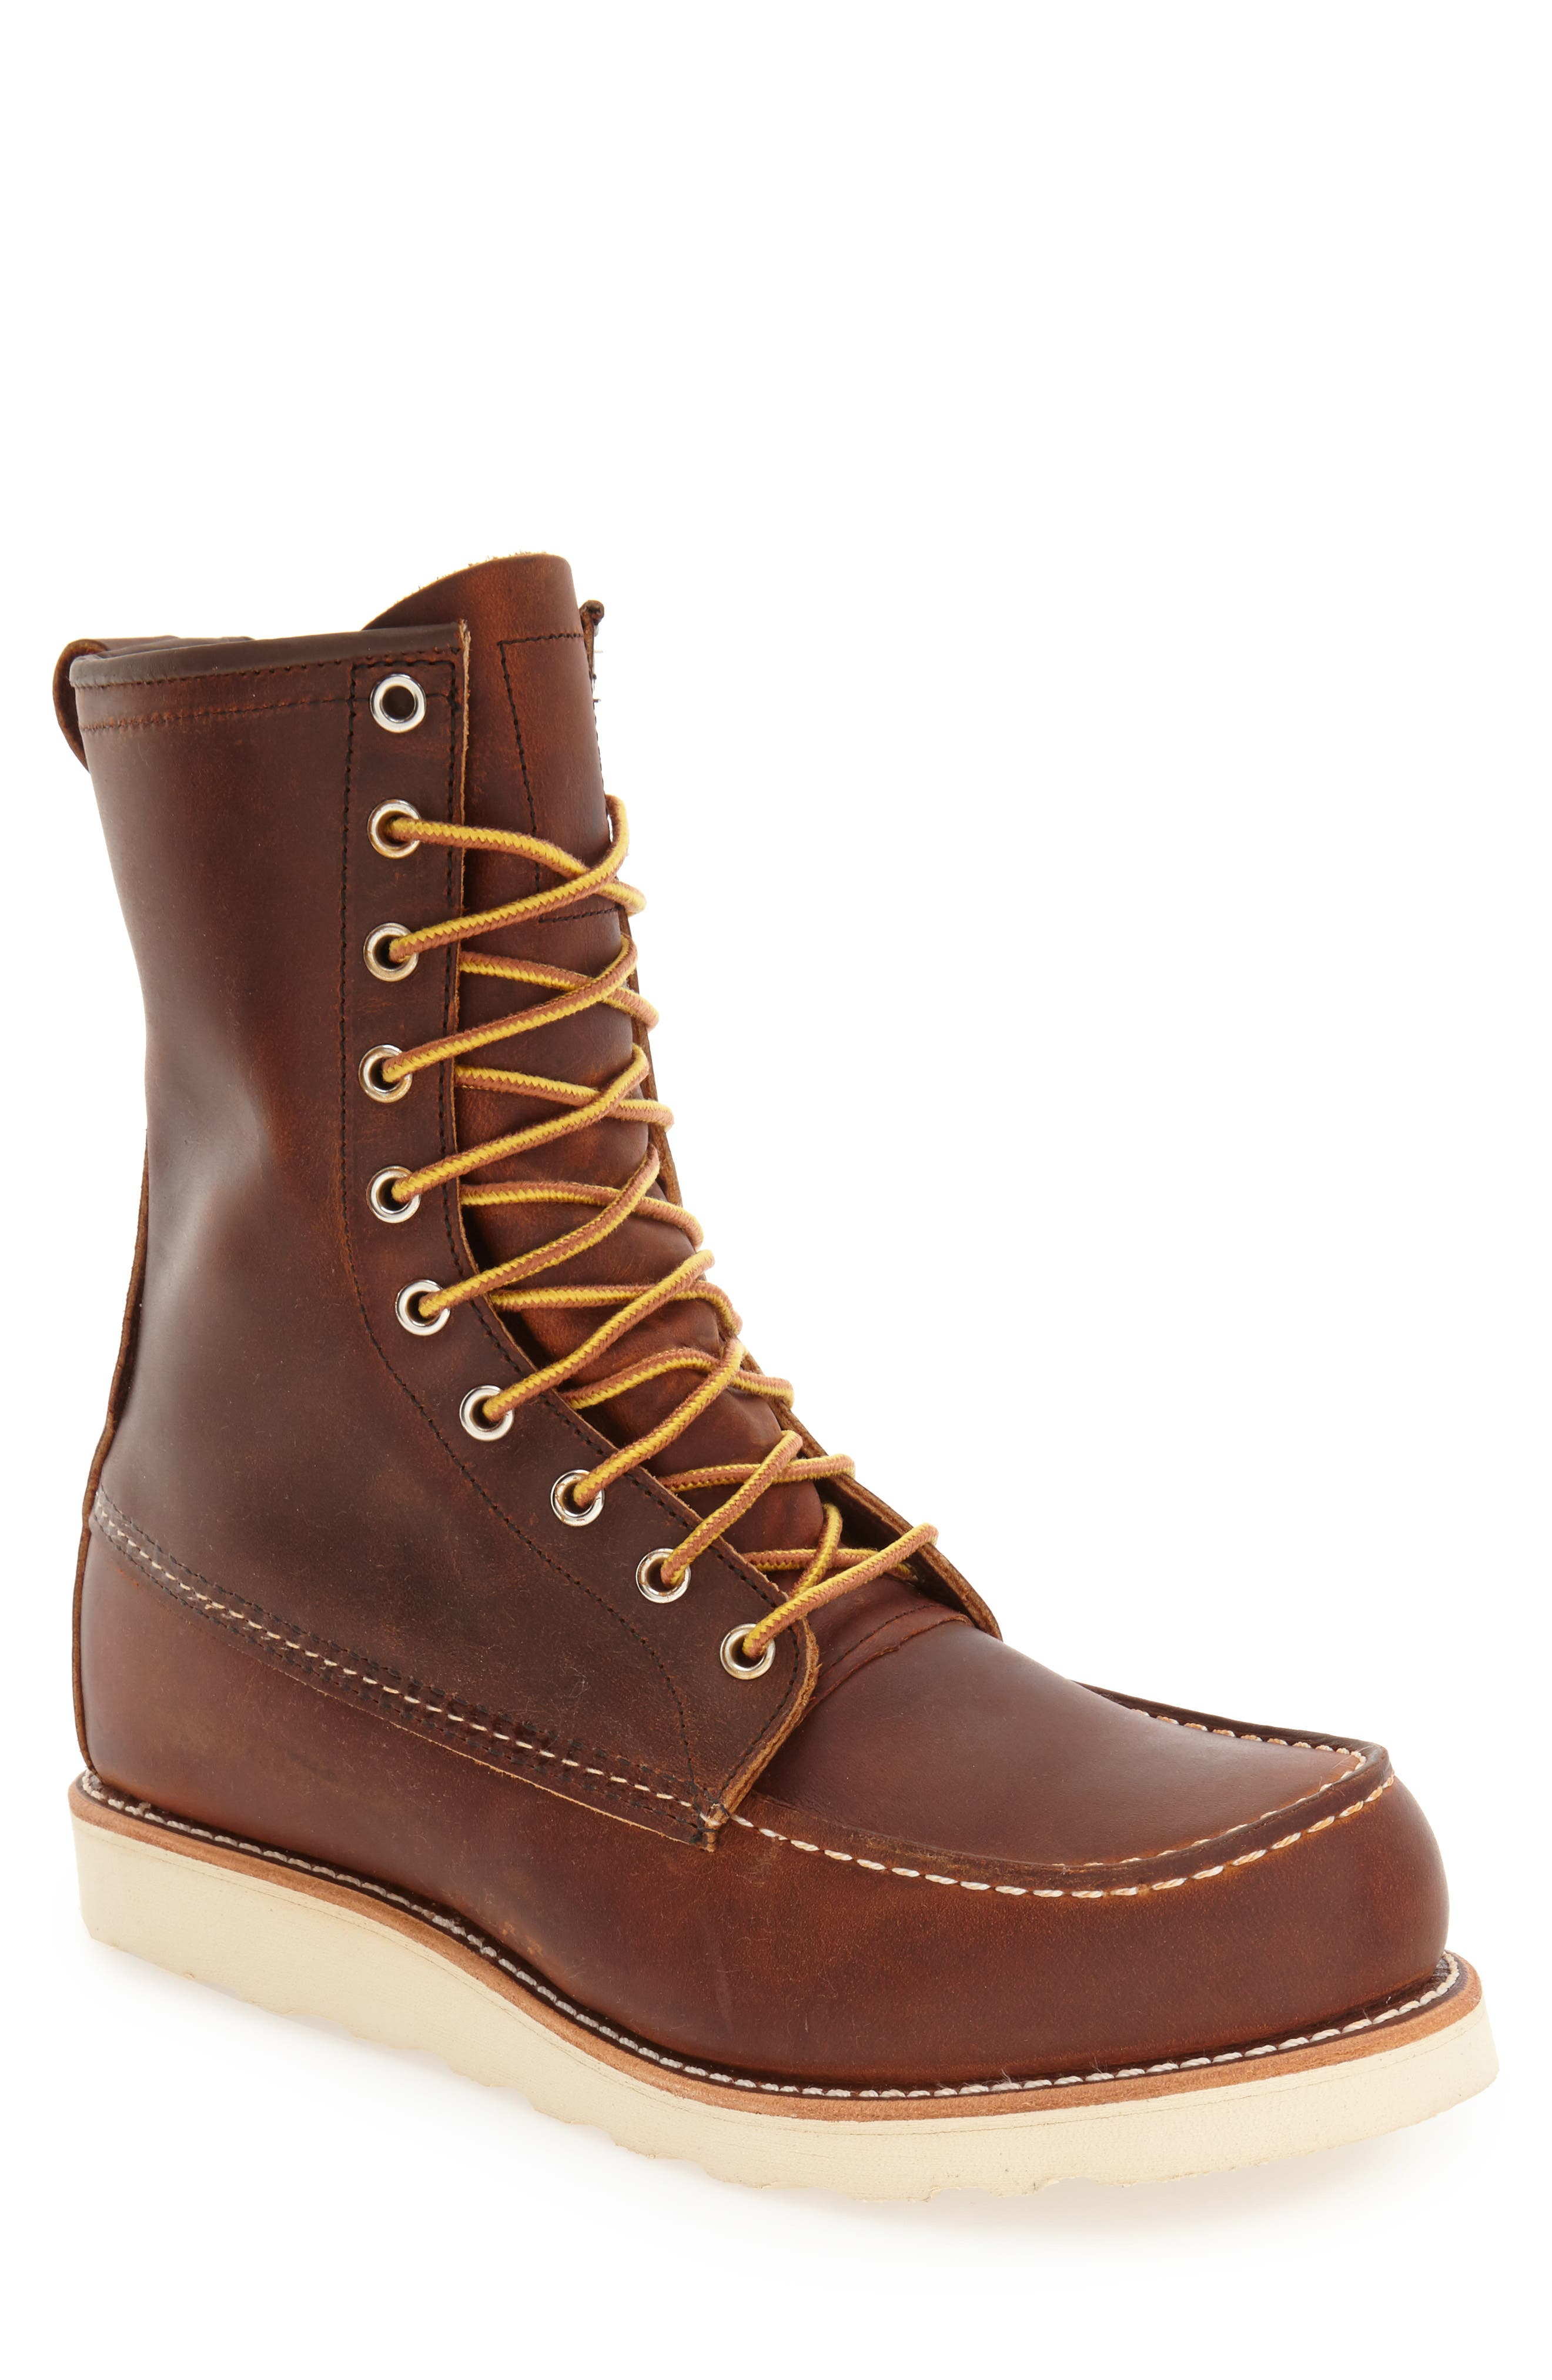 Alternate Image 1 Selected - Red Wing '877' Moc Toe Boot